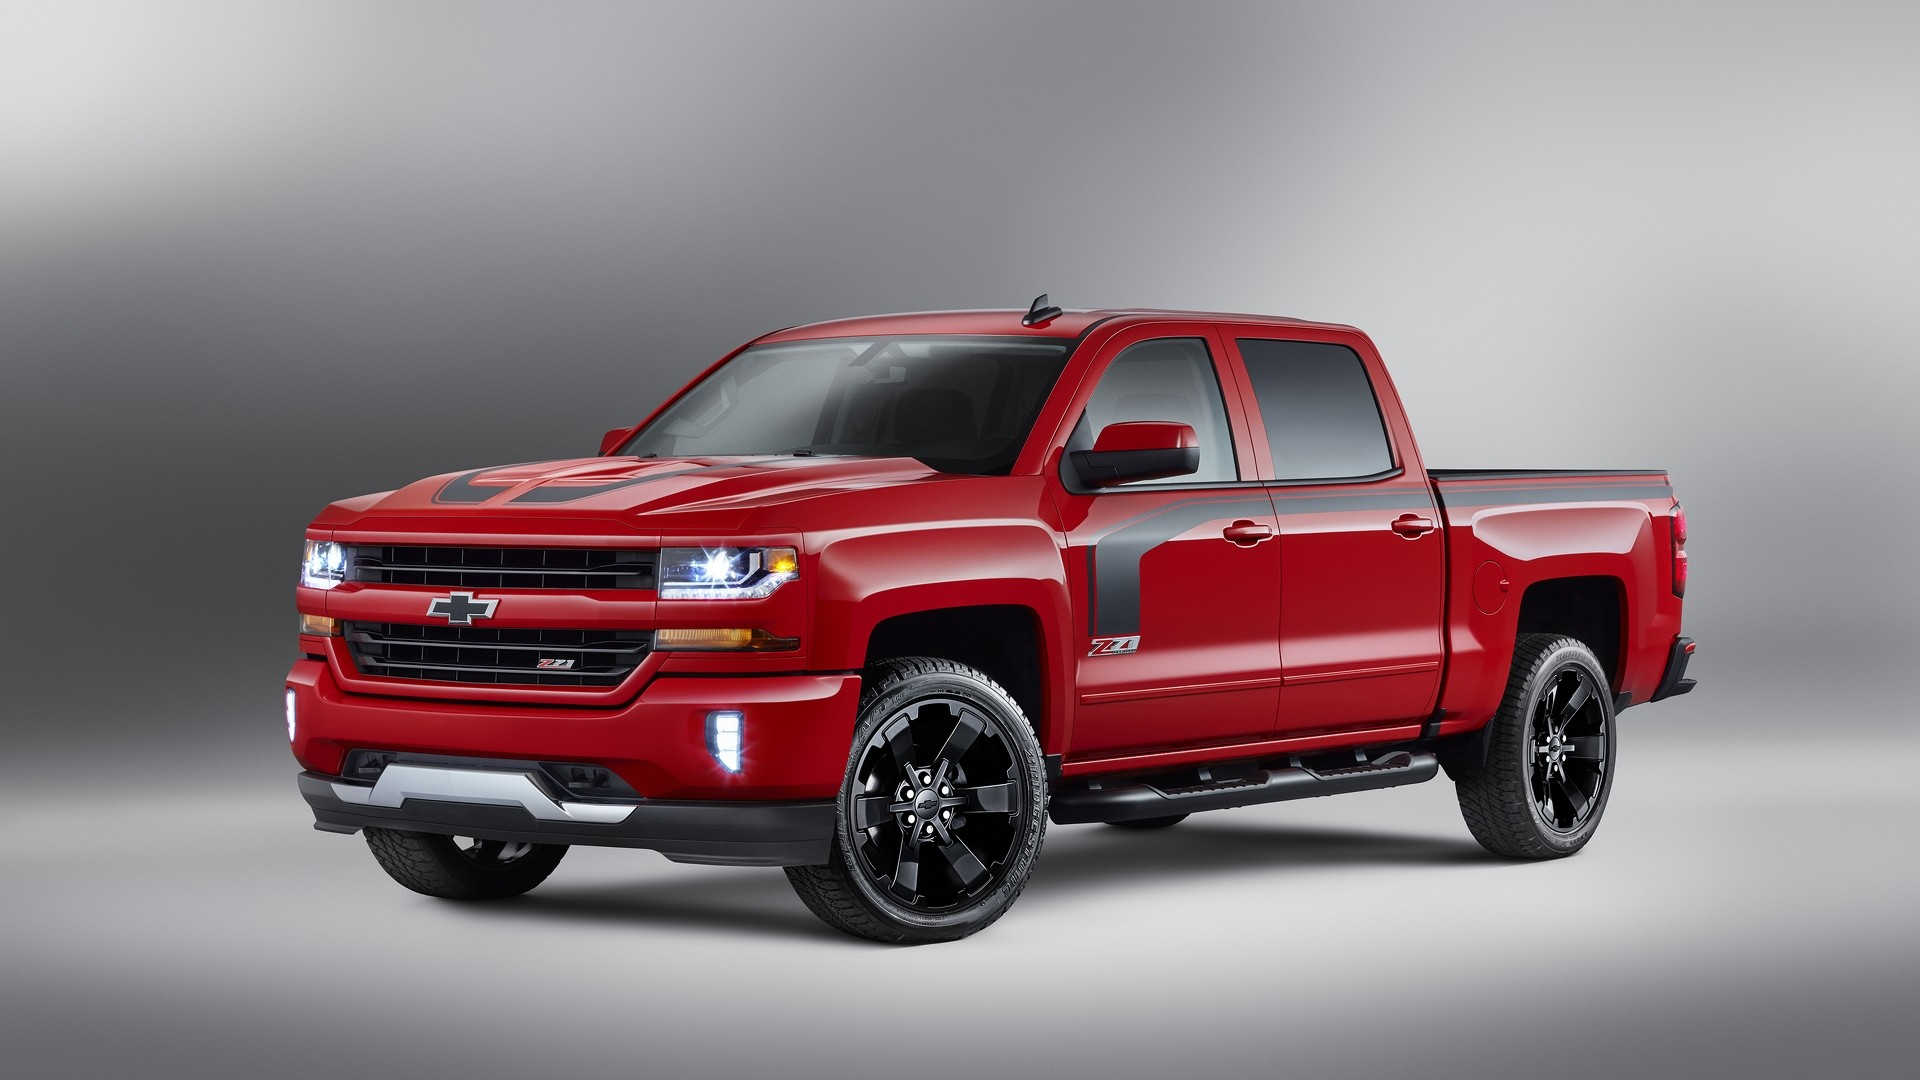 Silverado Cool HD Wallpaper